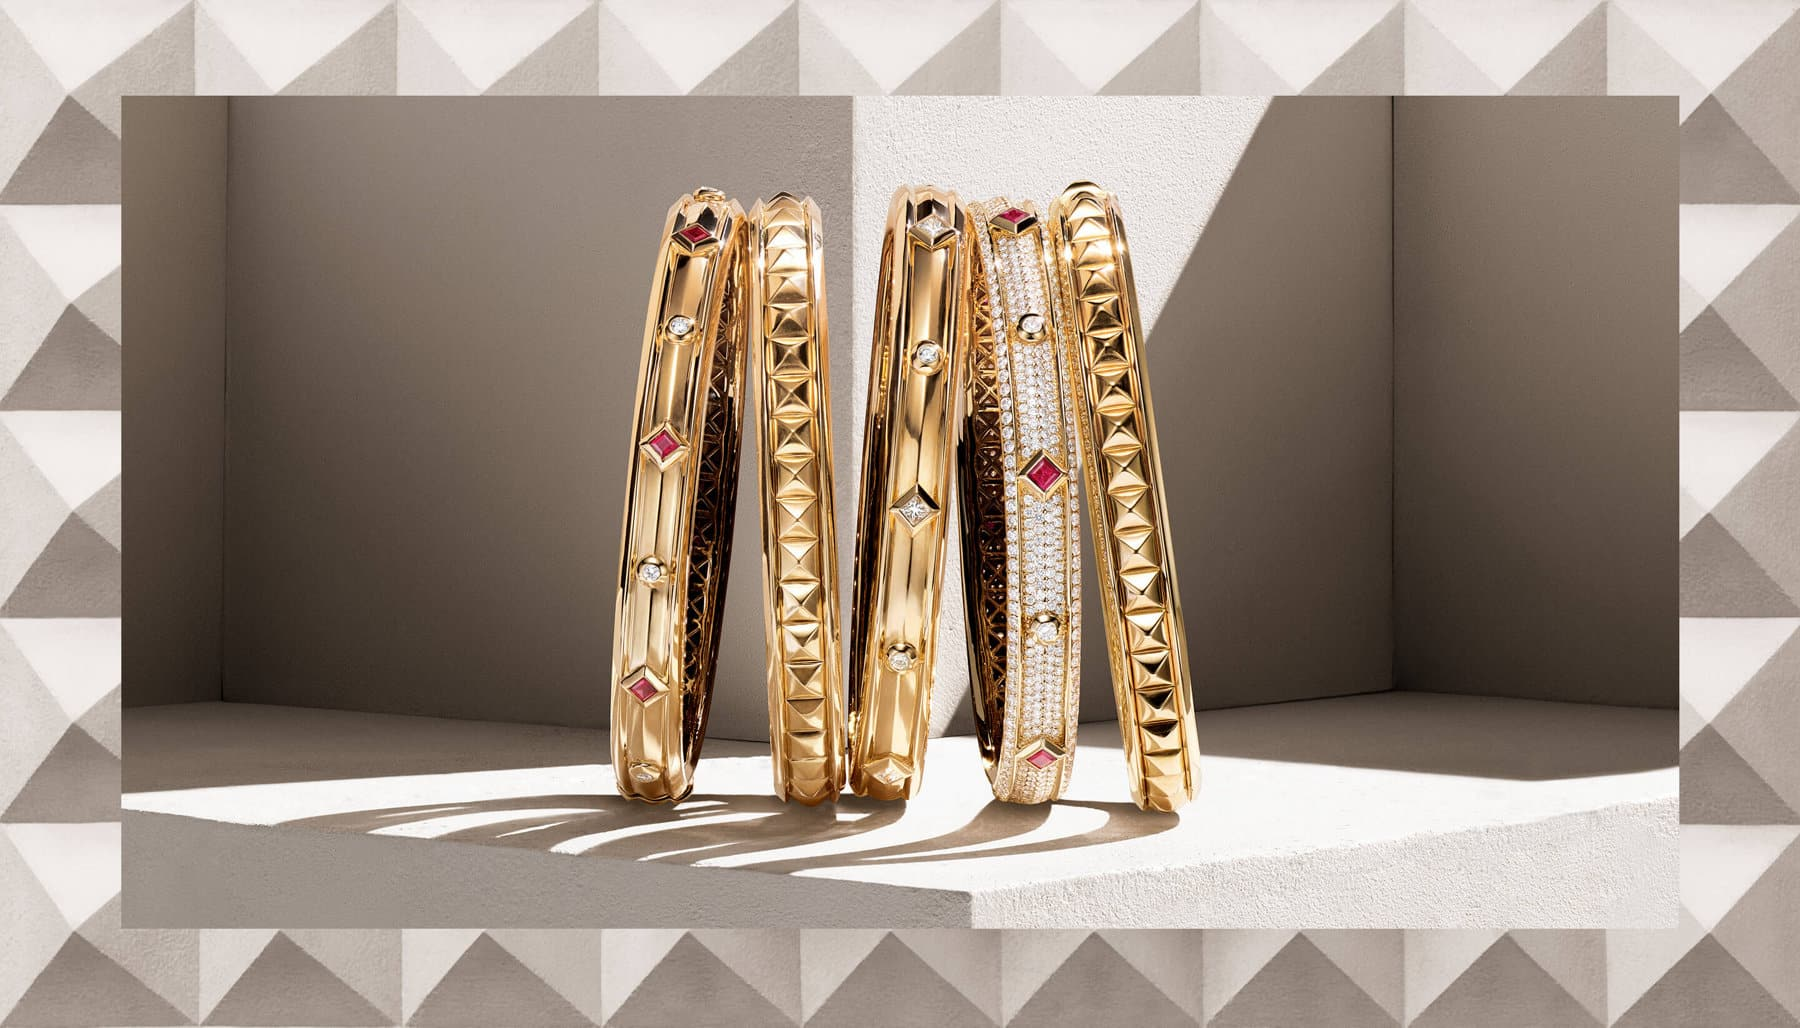 A color photo shows a horizontal stack of five David Yurman bracelets from the Modern Renaissance Collection leaning against each other on top of a beige-hued stone shelf with diagonal shadows. The women's jewelry is crafted from 18K yellow gold with or without white diamonds and rubies. This photo is juxtaposed over a color photo of a beige stone surface with pyramid-shaped protrusions.